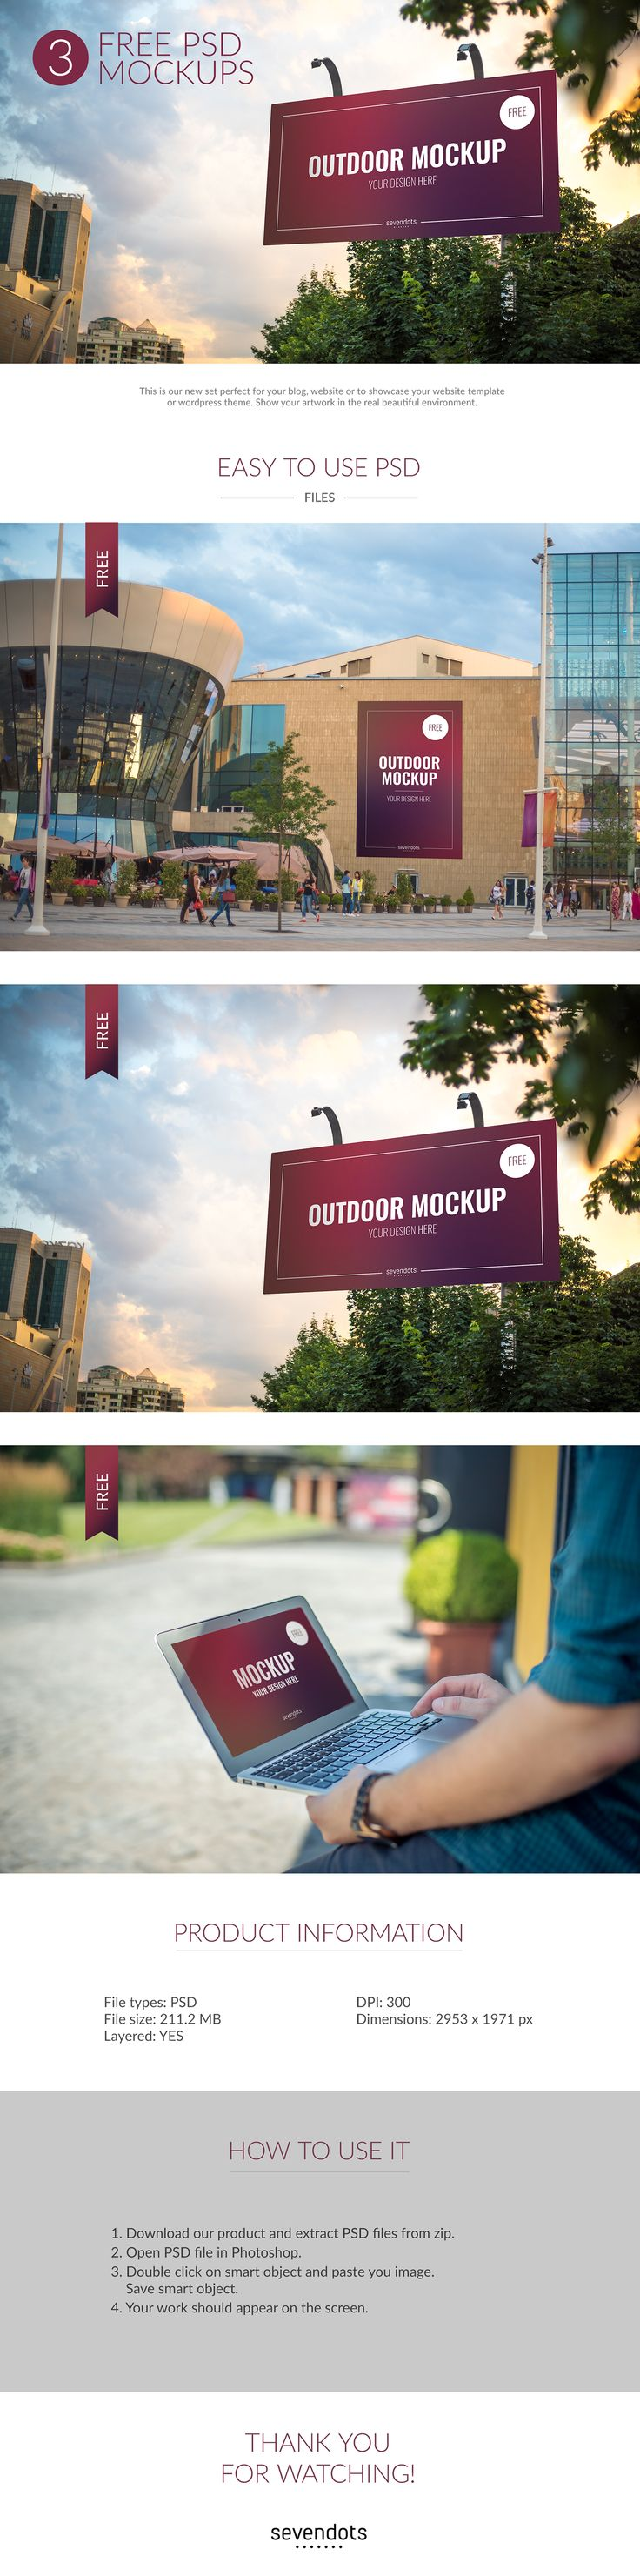 Poster design dimensions - Find This Pin And More On Mockups Billboards Posters By Marielaparodi